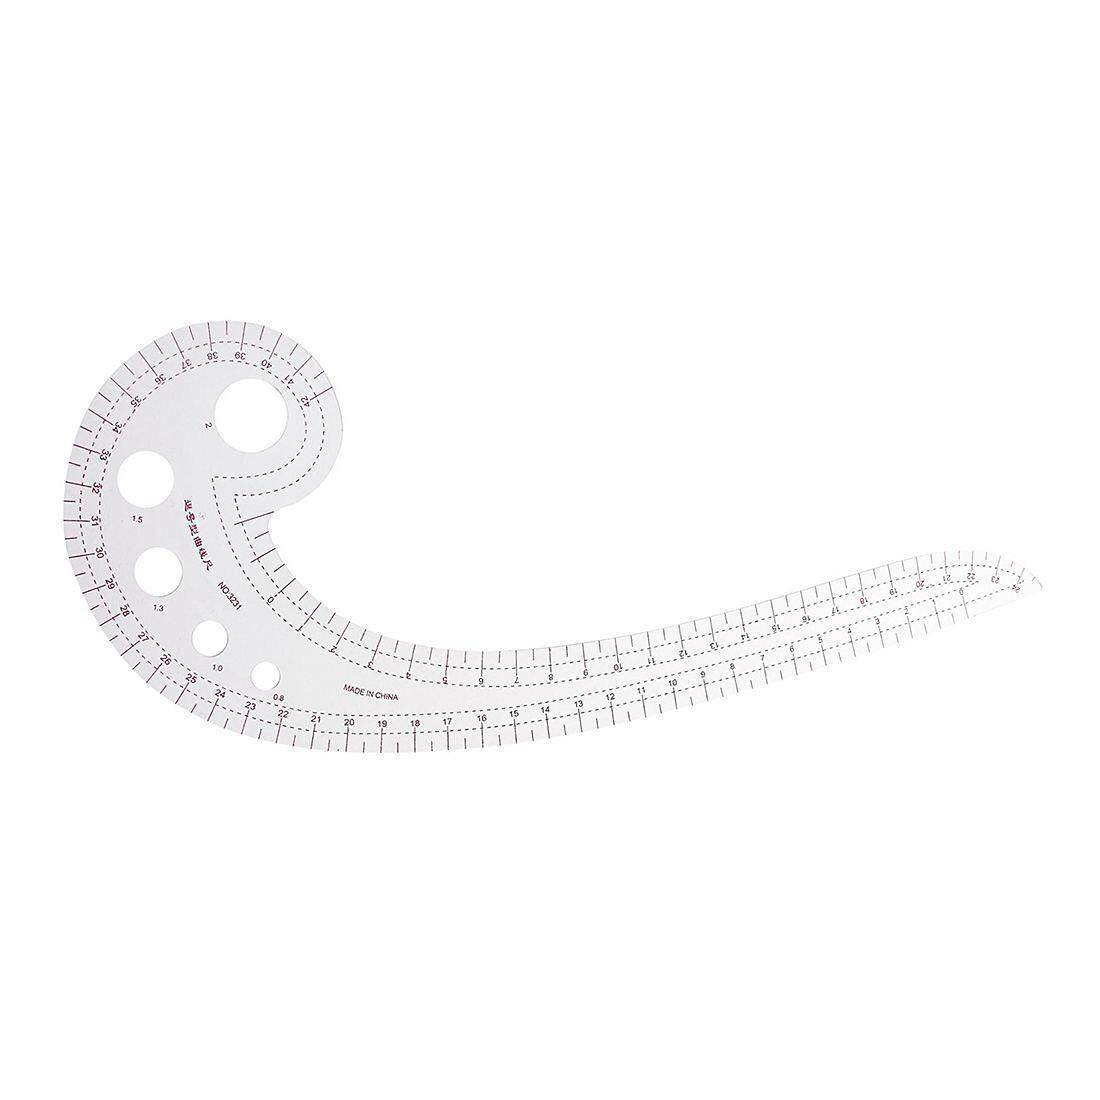 42cm Comma Shaped Plastic Transparent DIY Clothing Tailor Drawing Drafting Measuring Template Spline French Curve RulerTHB132